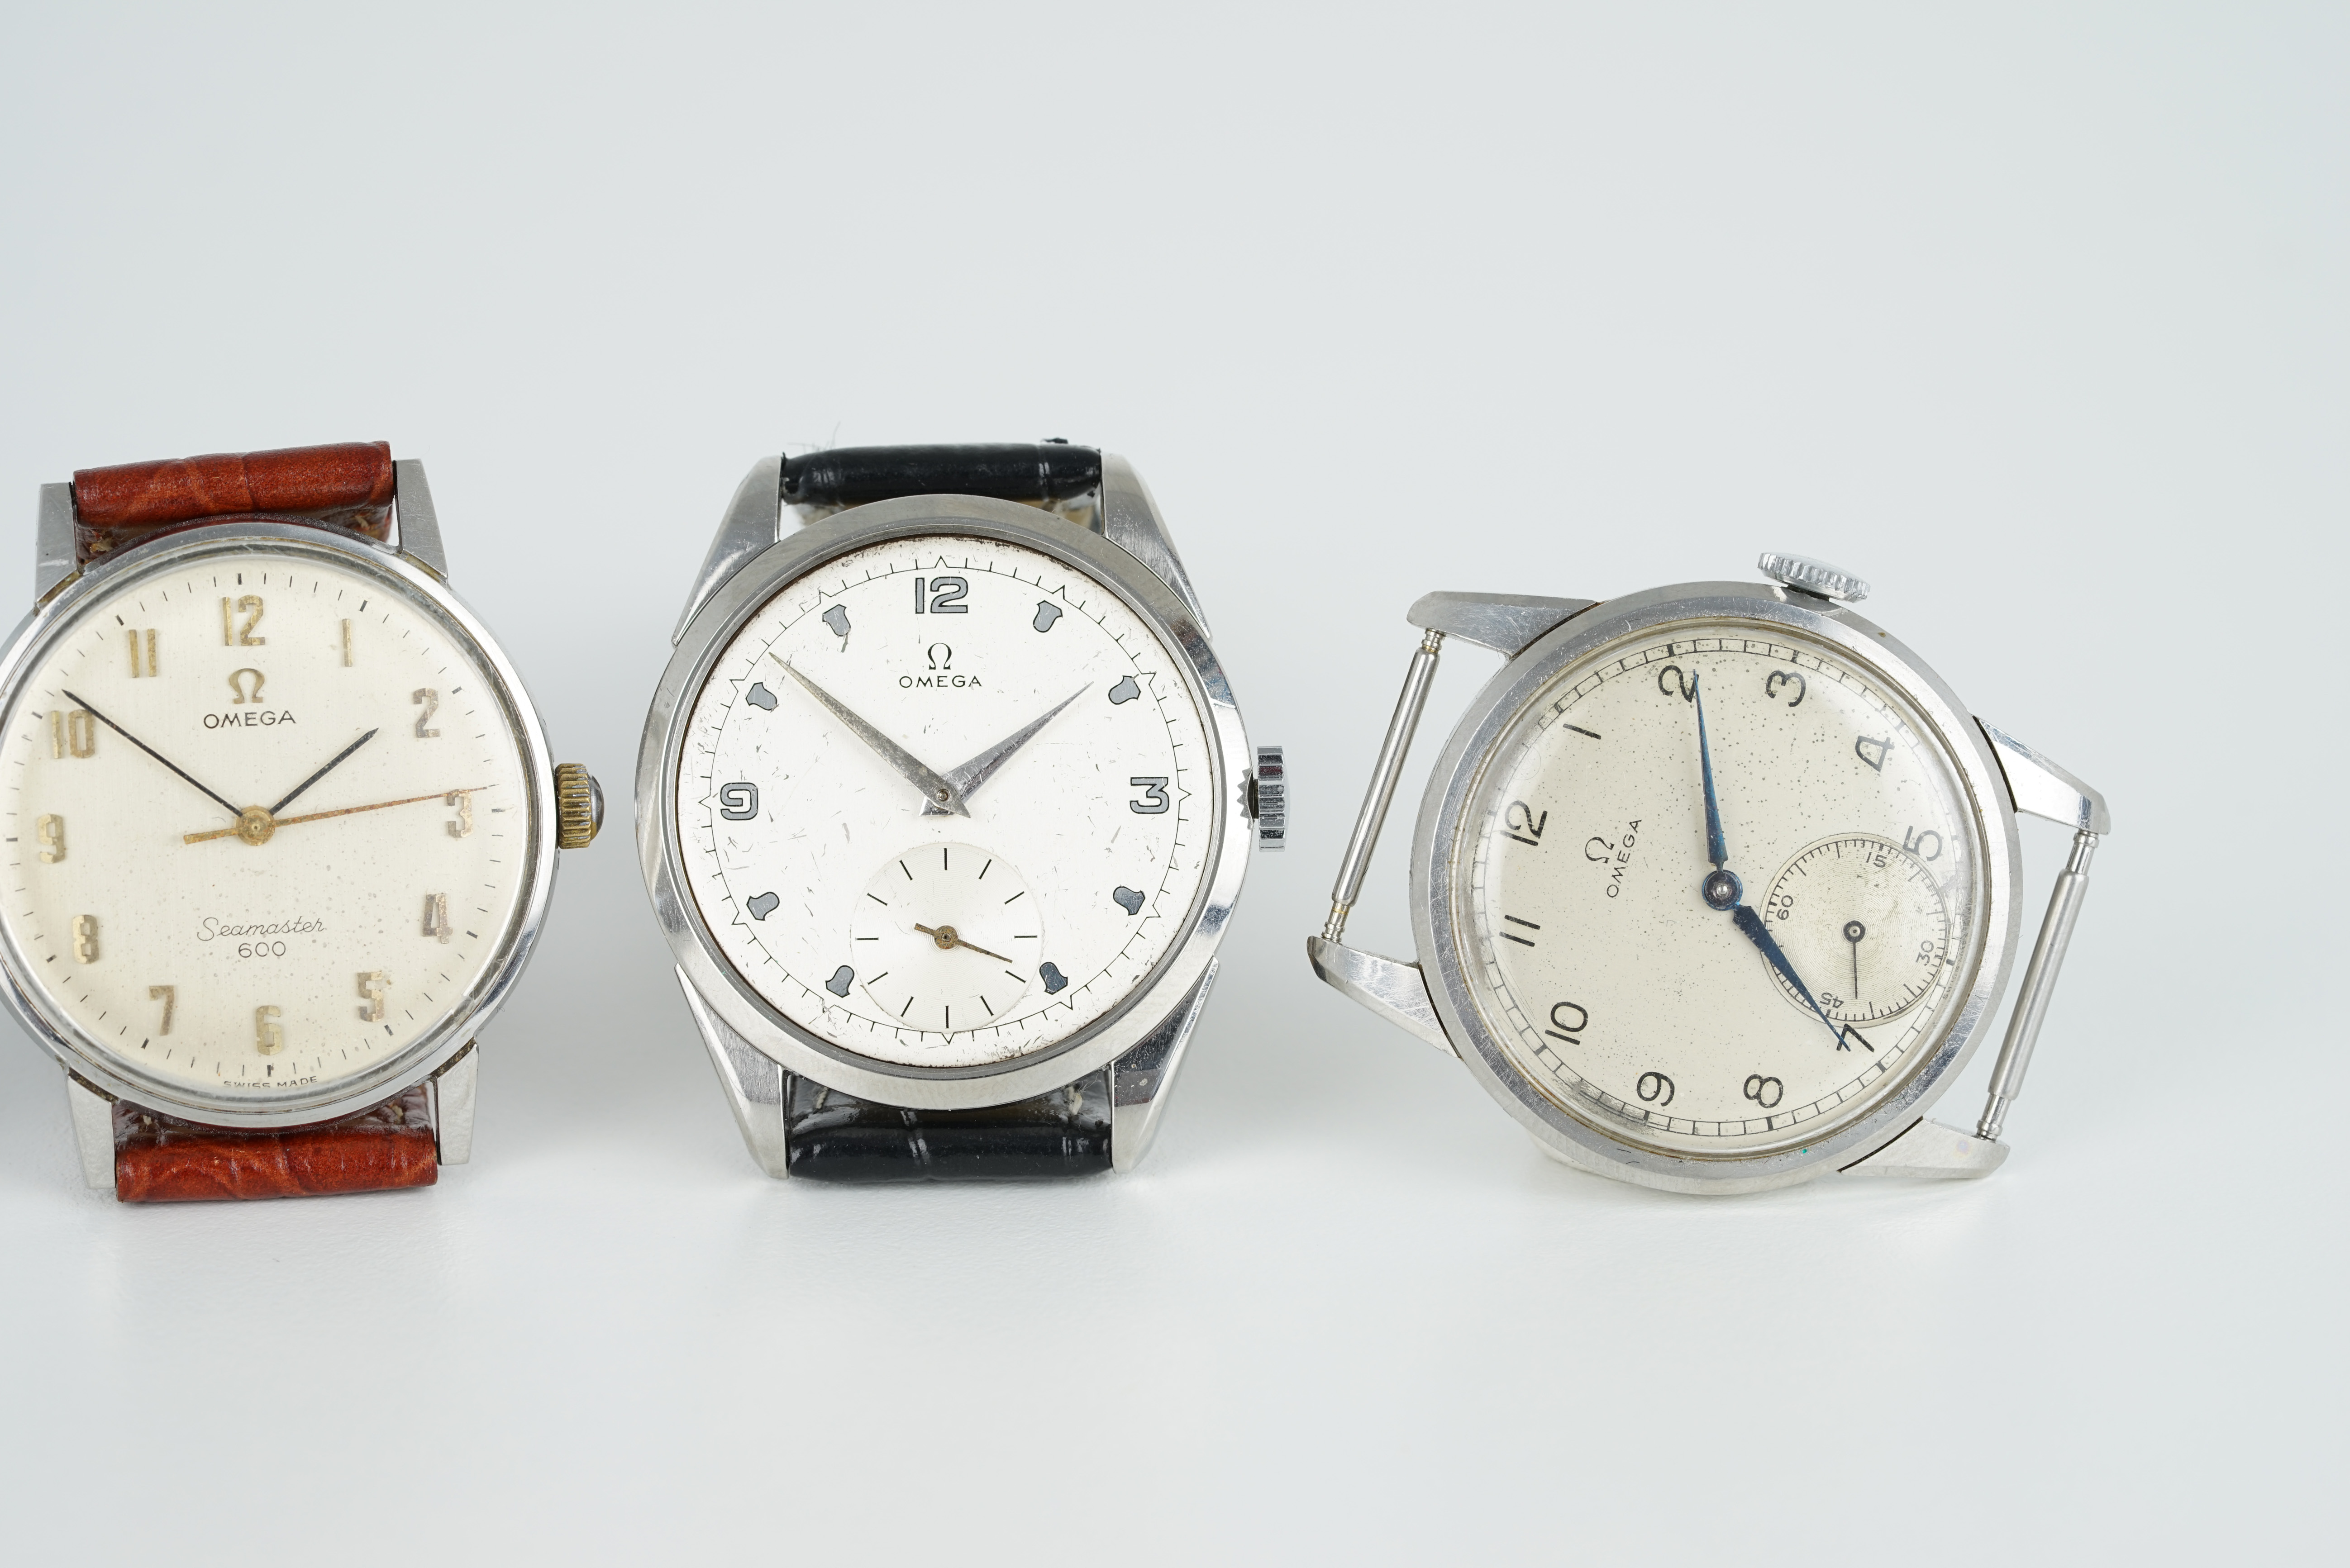 GROUP OF 4 OMEGA WRISTWATCHES, all stainless steel cases with manually wound movements inside, all - Image 3 of 3